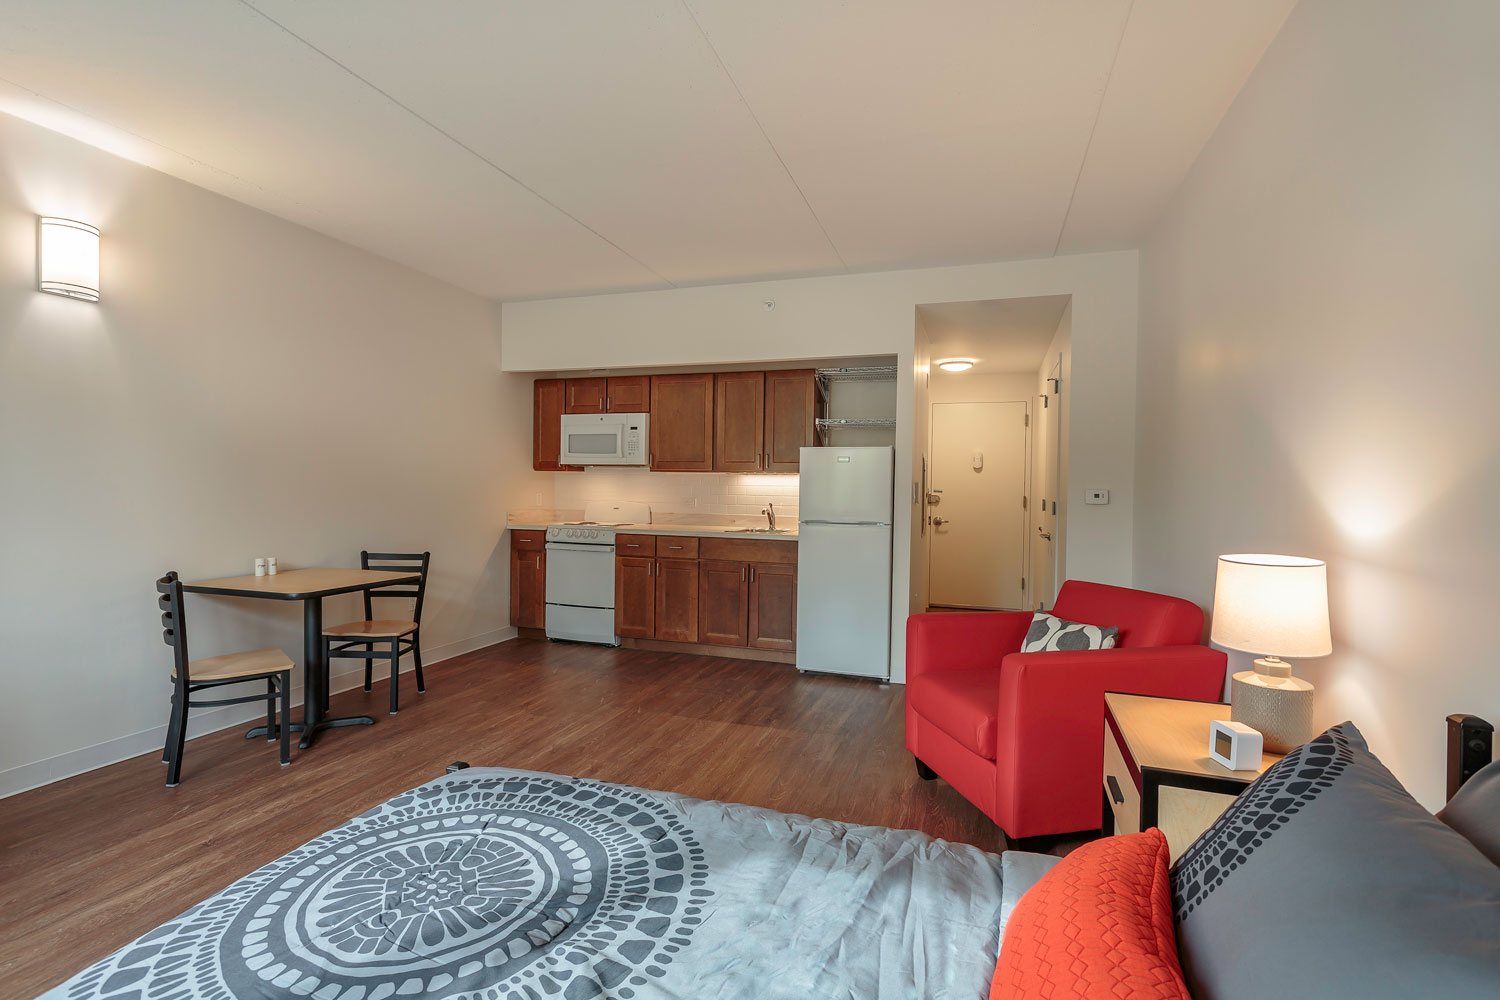 Rooming units at Gates Avenue Residence each have kitchenettes and three piece bathrooms.